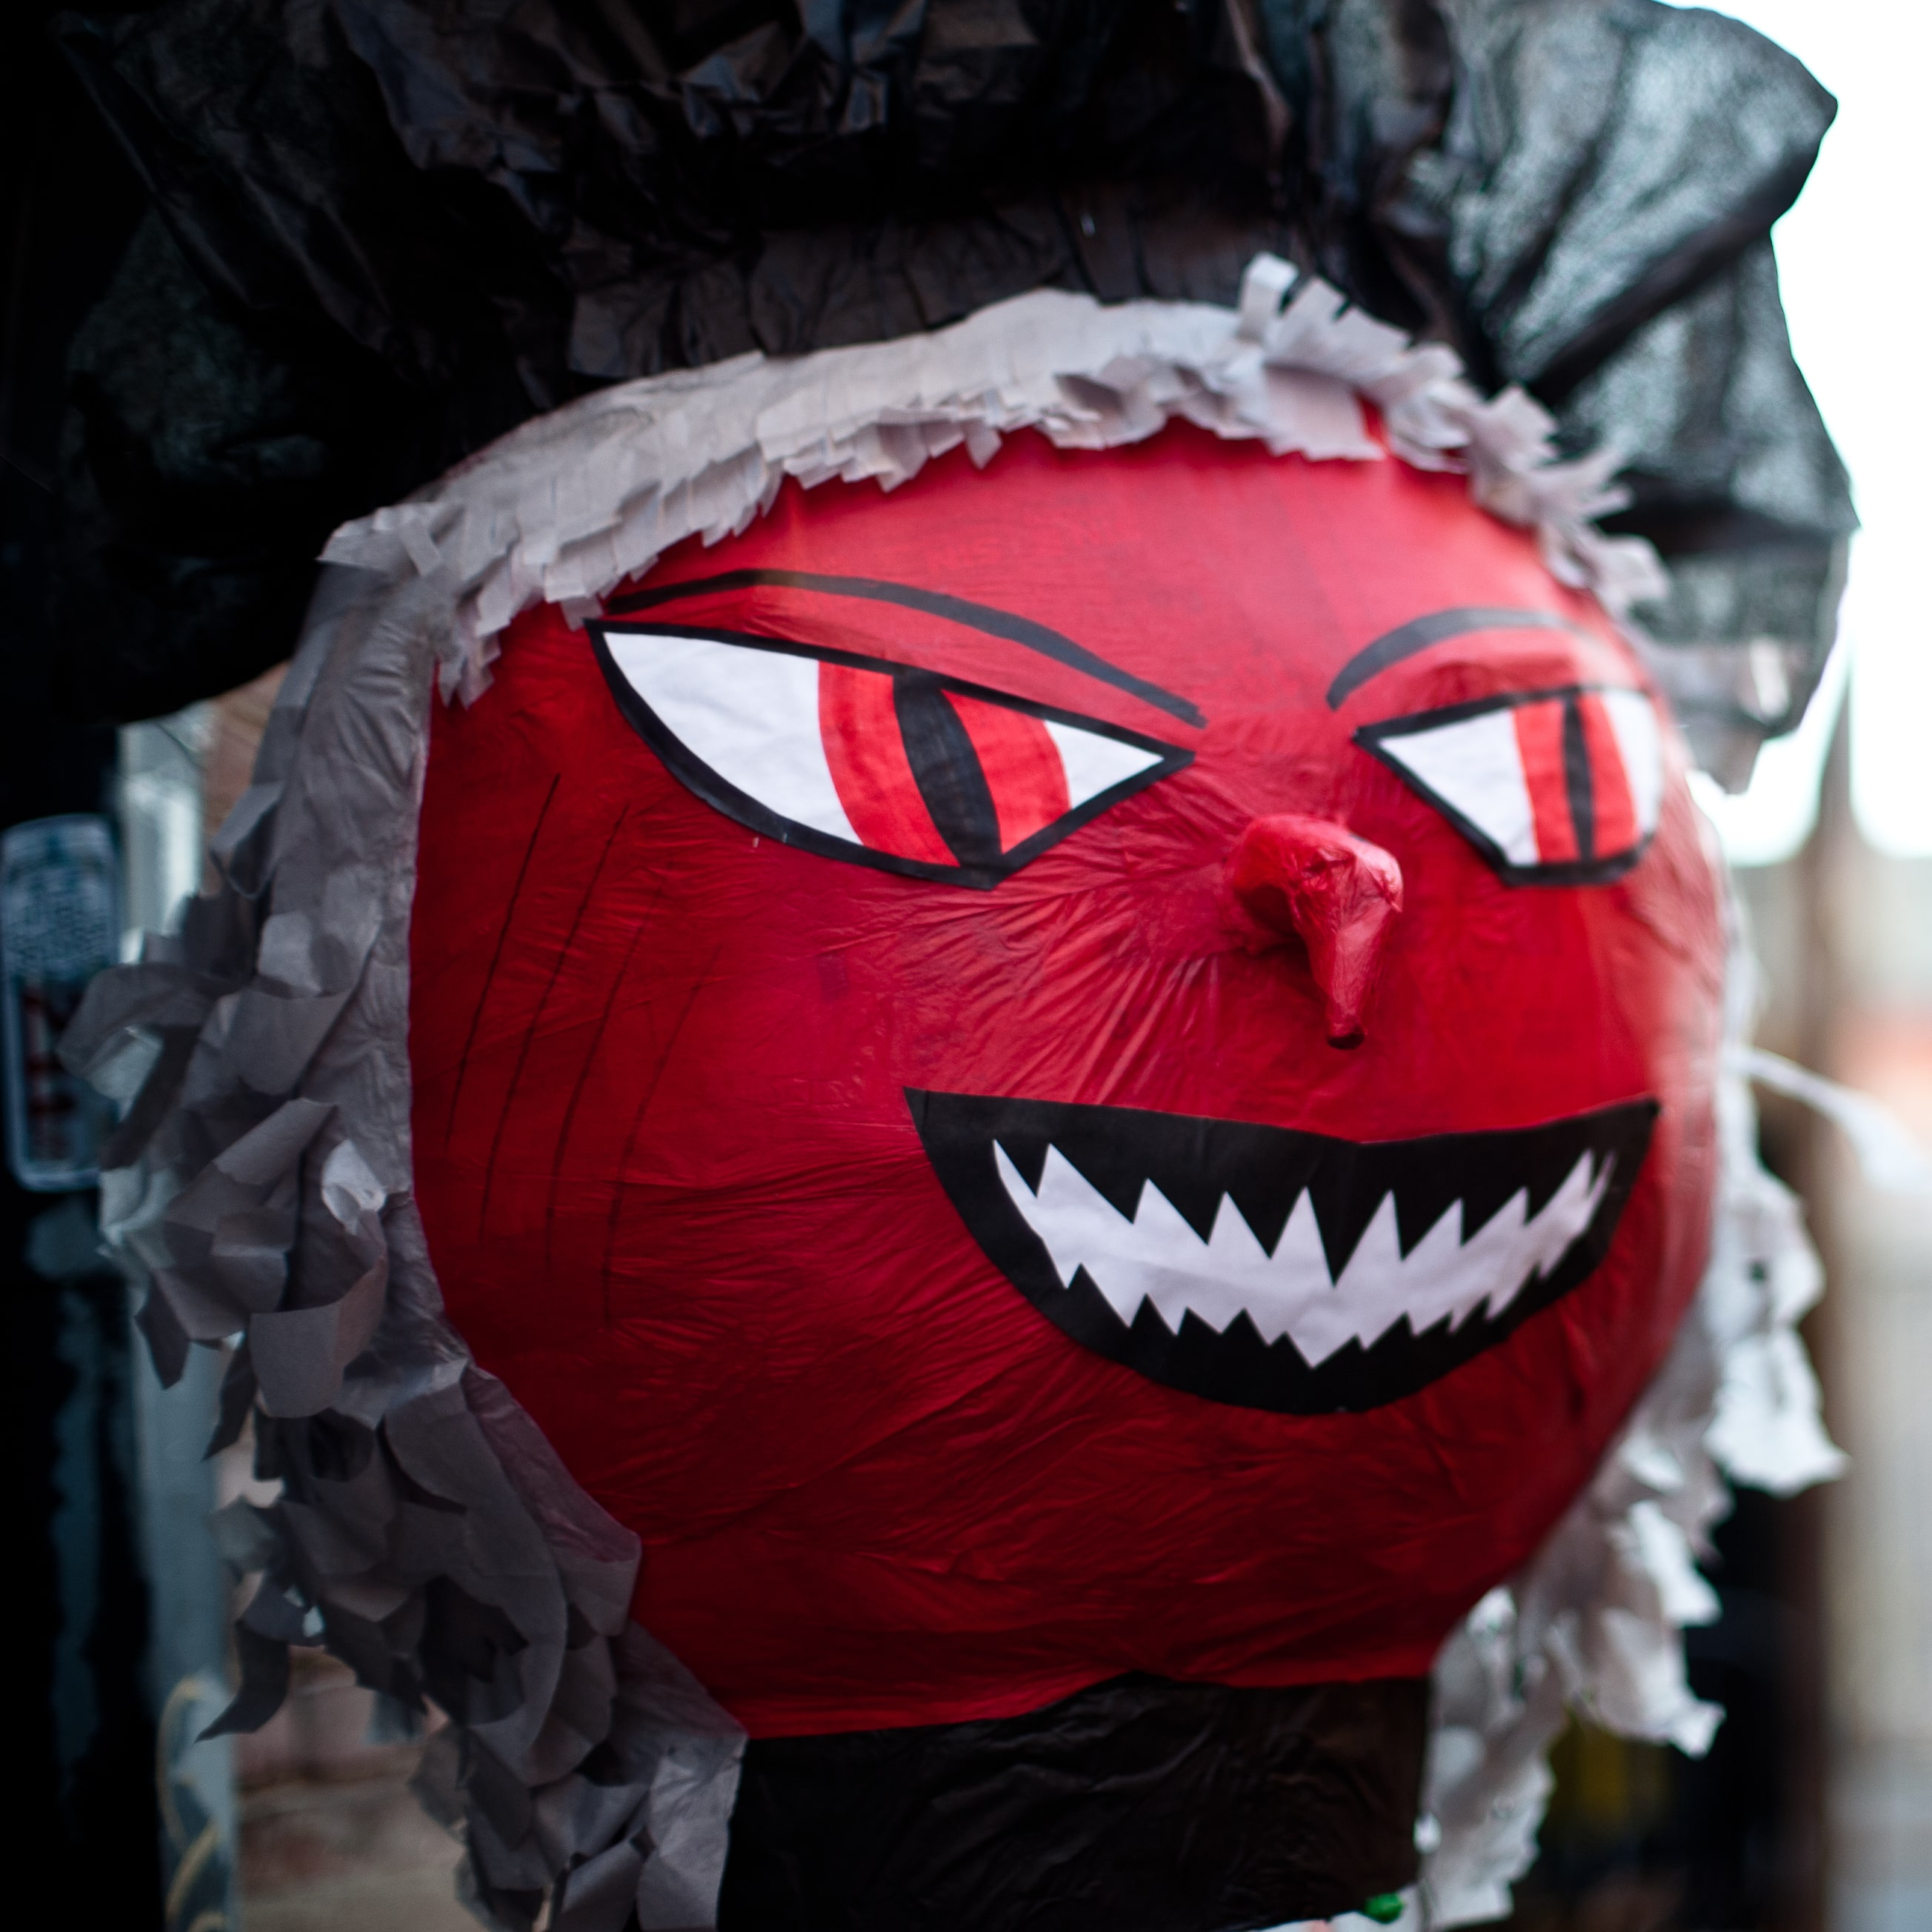 A festive pinata makes for a spooky office halloween decoration!